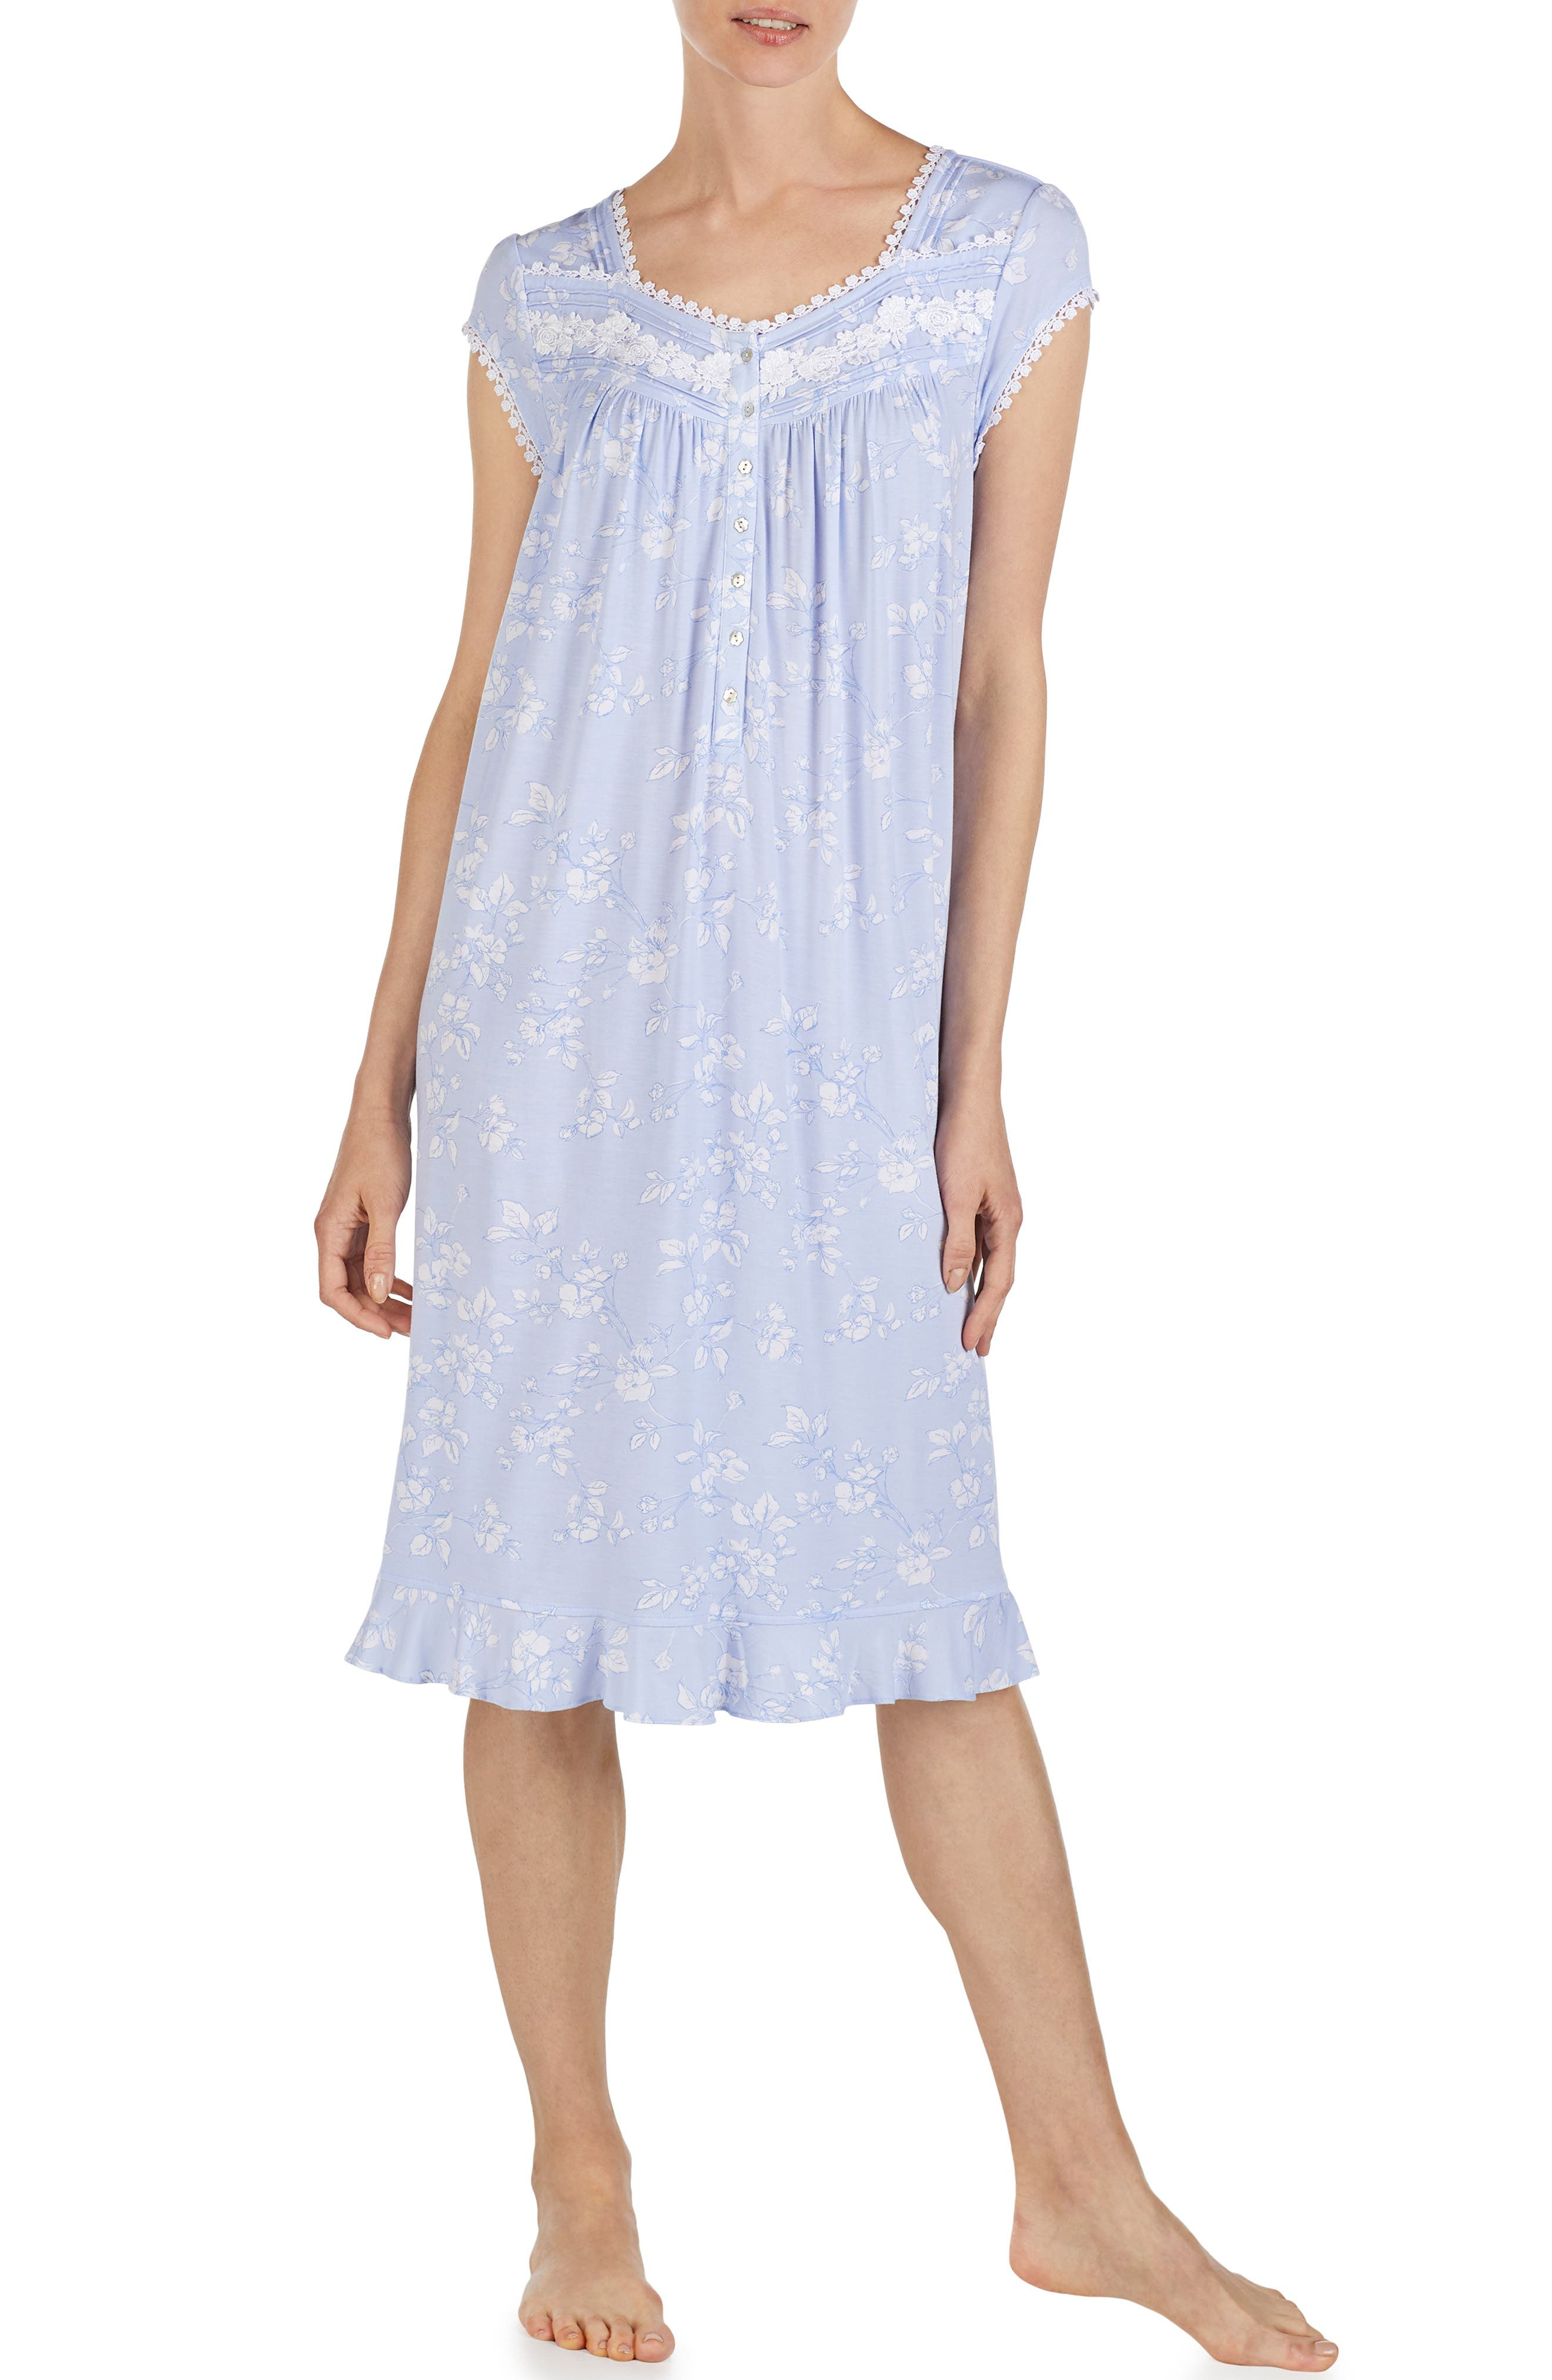 EILEEN WEST, Waltz Nightgown, Main thumbnail 1, color, PERI GROUND